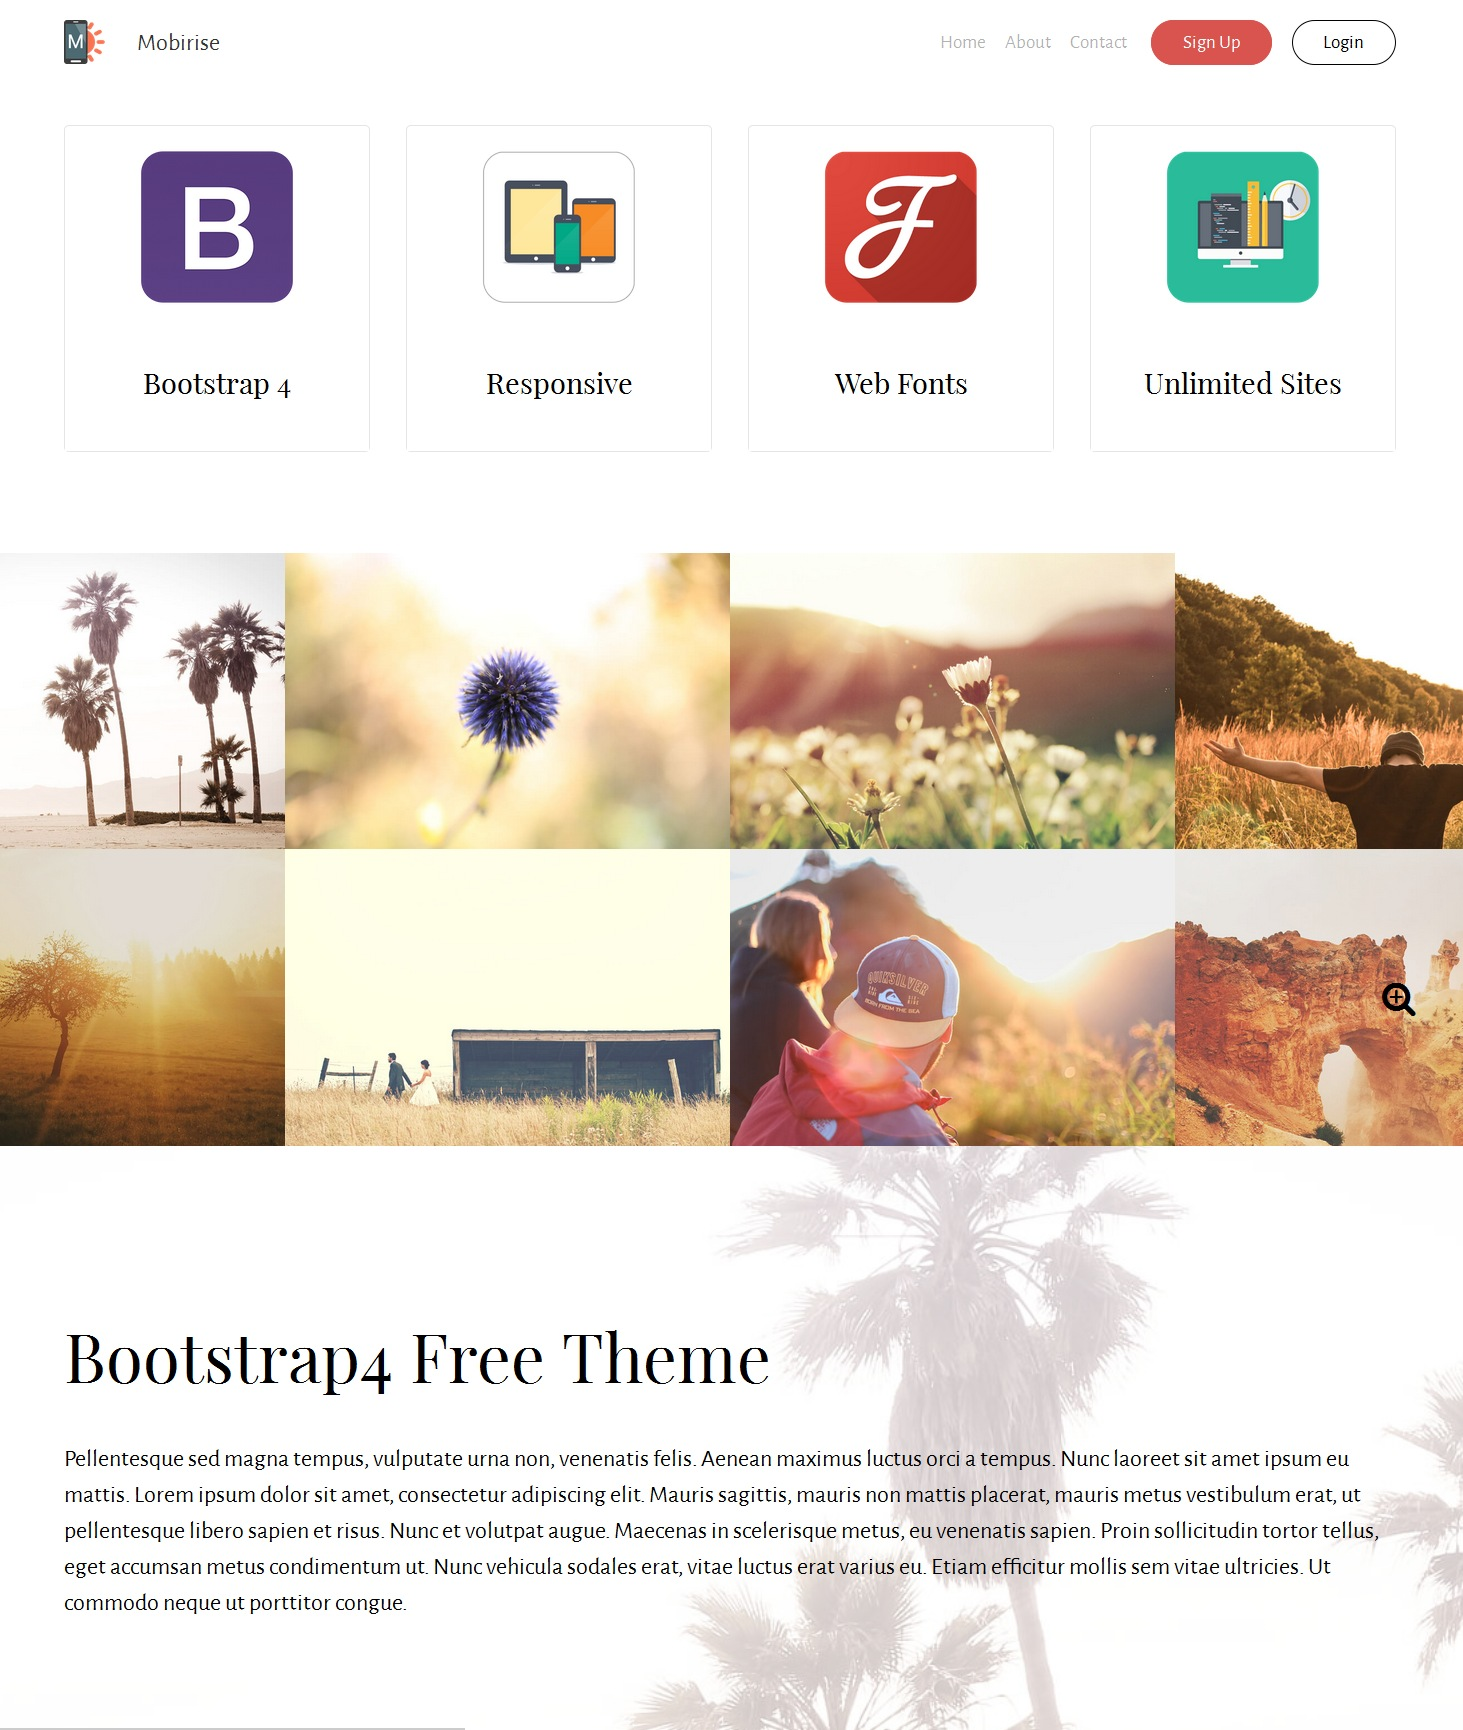 HTML Bootstrap Image Gallery Theme